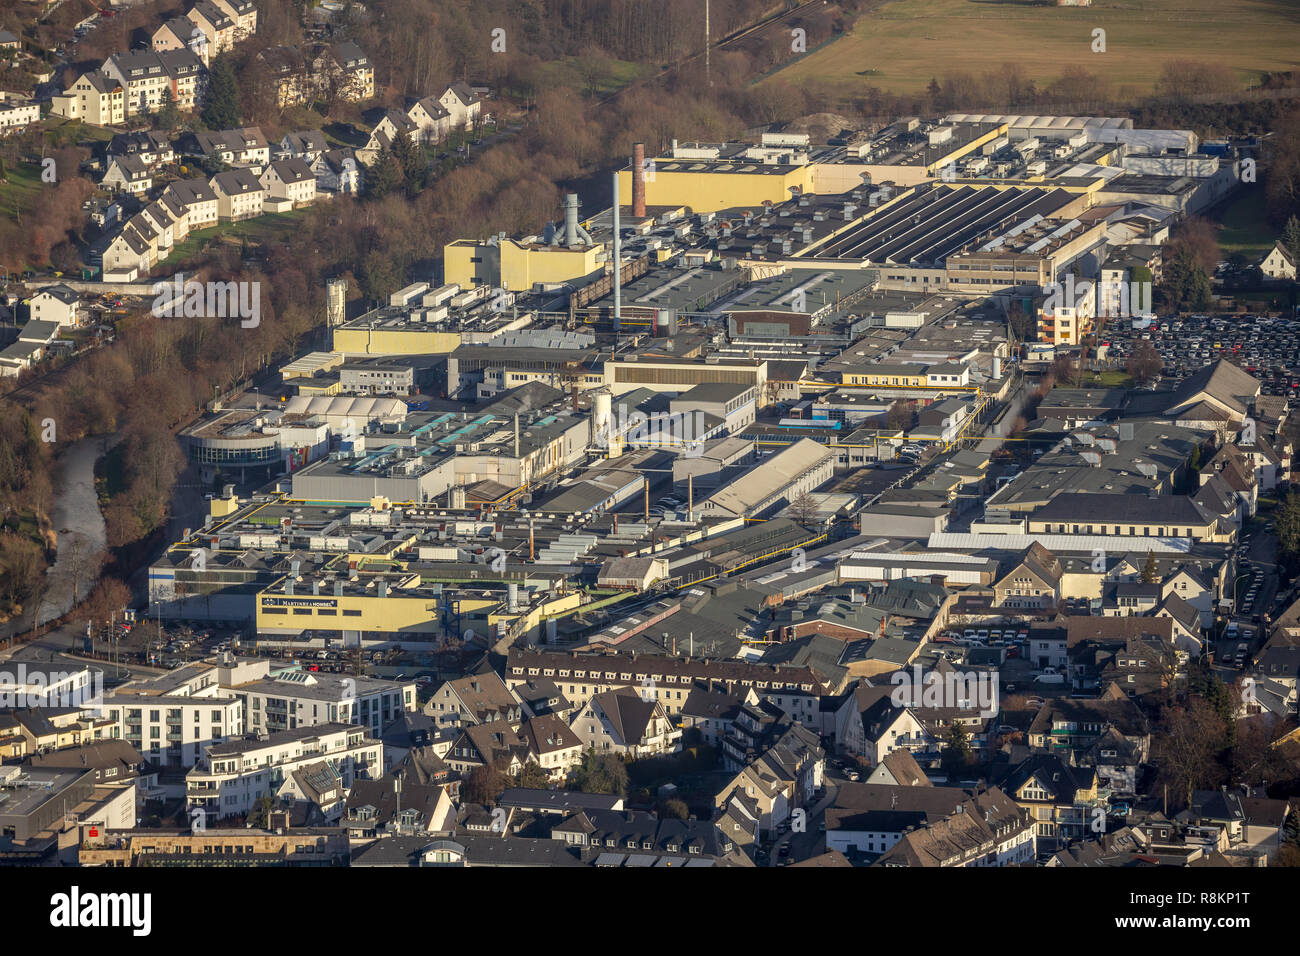 Aerial view, aerial view, factory premises Martinrea Honsel Germany GmbH, supplier for light metal components, Fritz-Honsel-Straße, Ruhr, Meschede, Sa - Stock Image